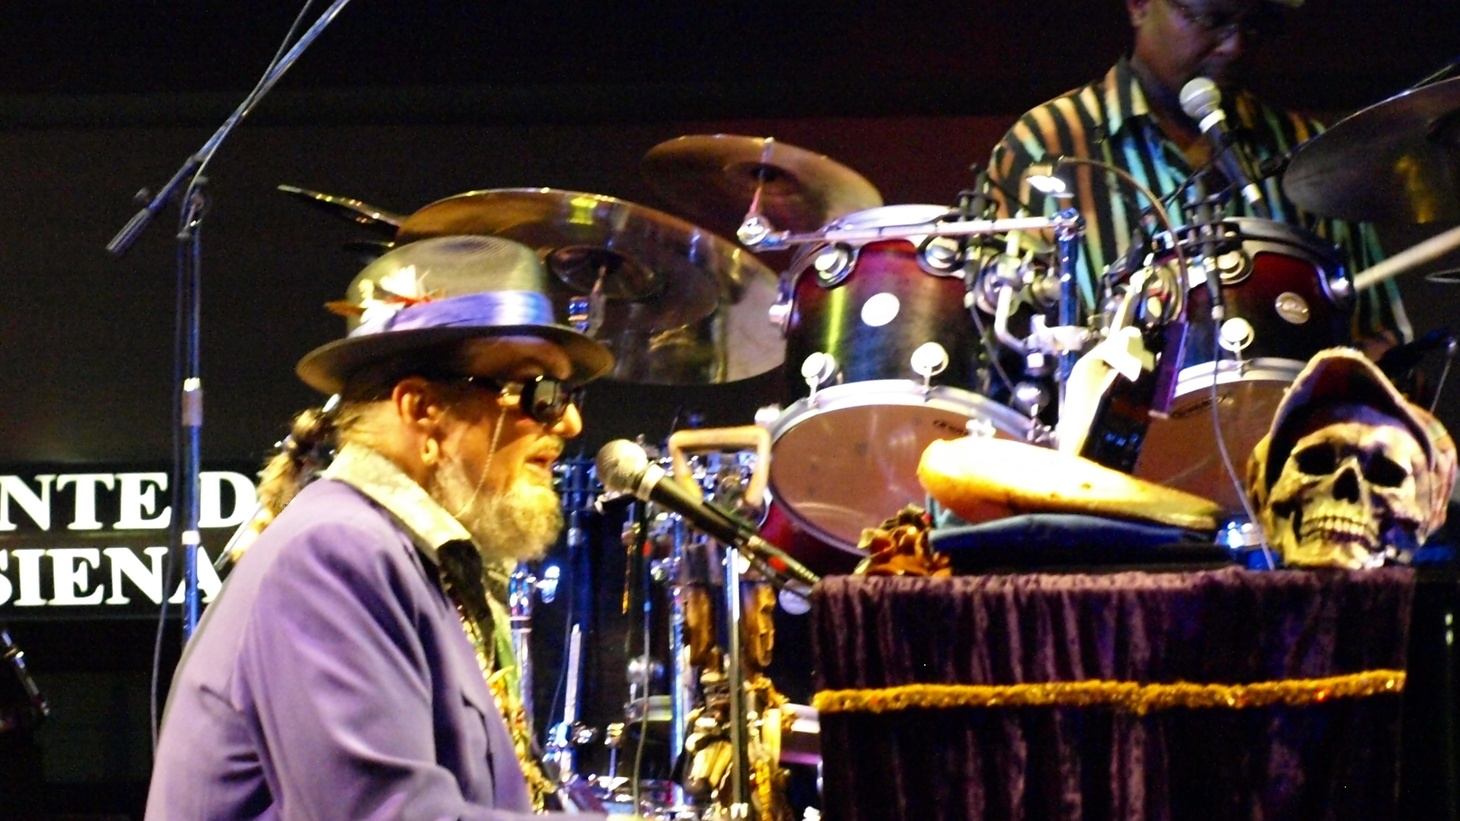 Dr. John at Liri Blues, 2010